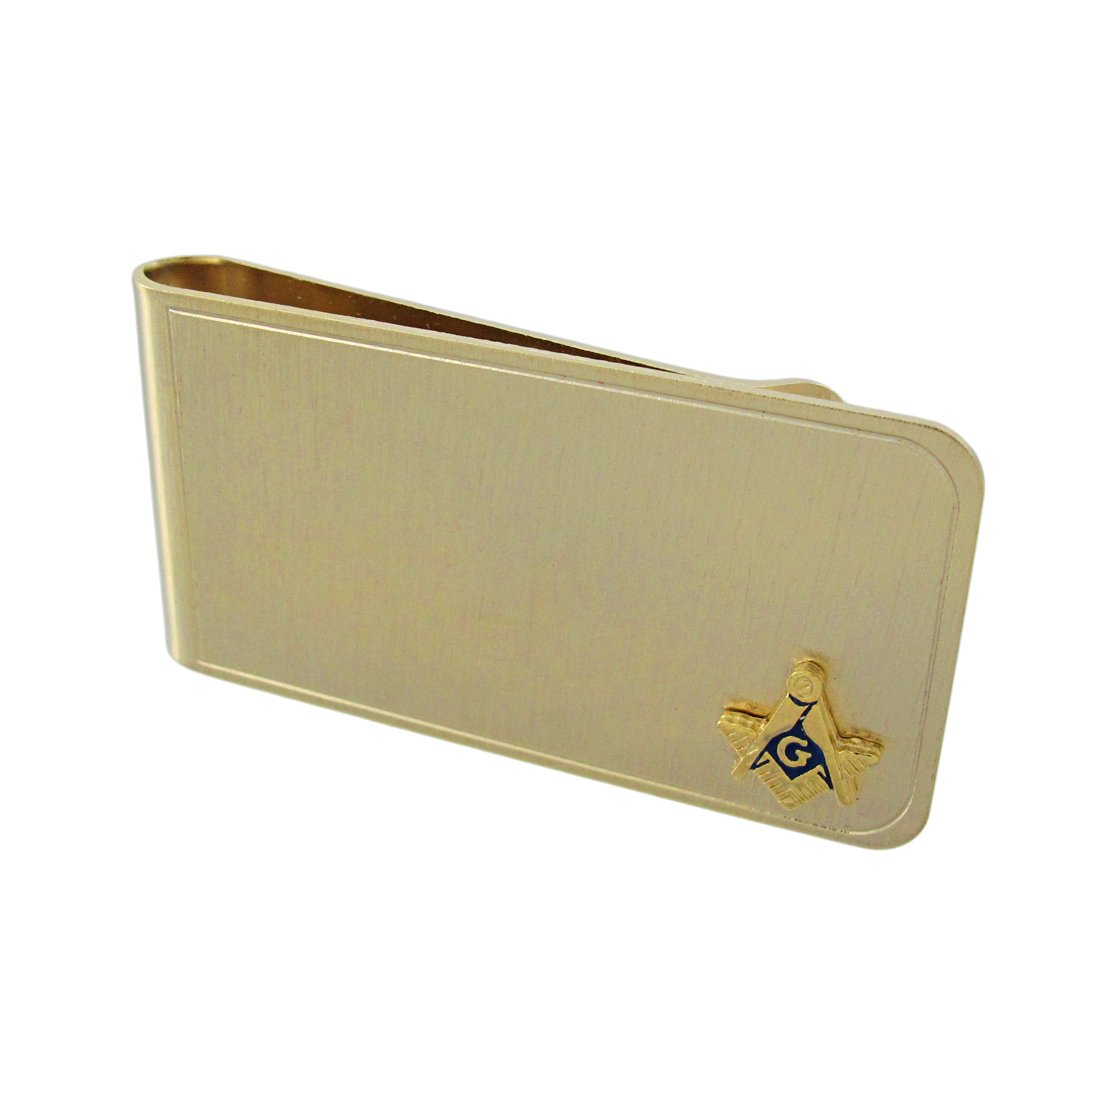 Things2Die4 Gold Plated Square and Compass Masonic Symbol Money Clip 2065